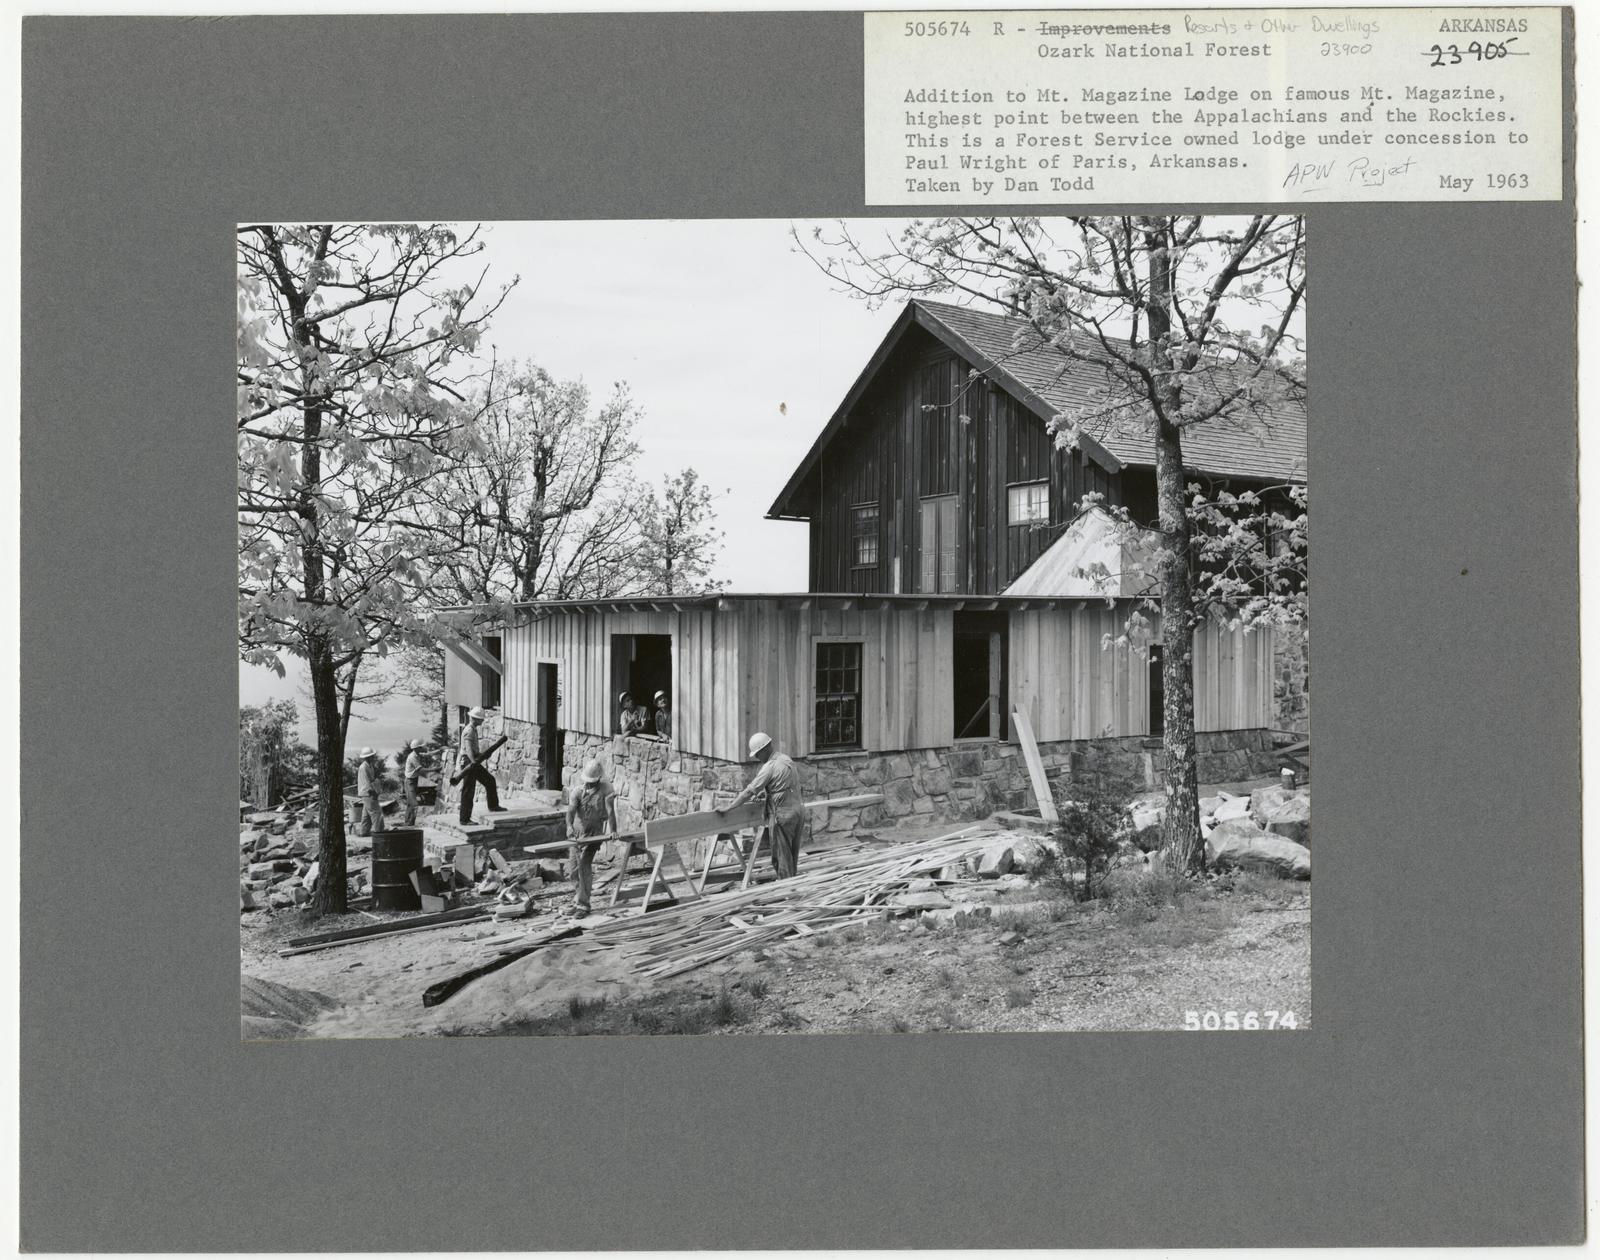 Resorts and Other Dwellings - Arkansas